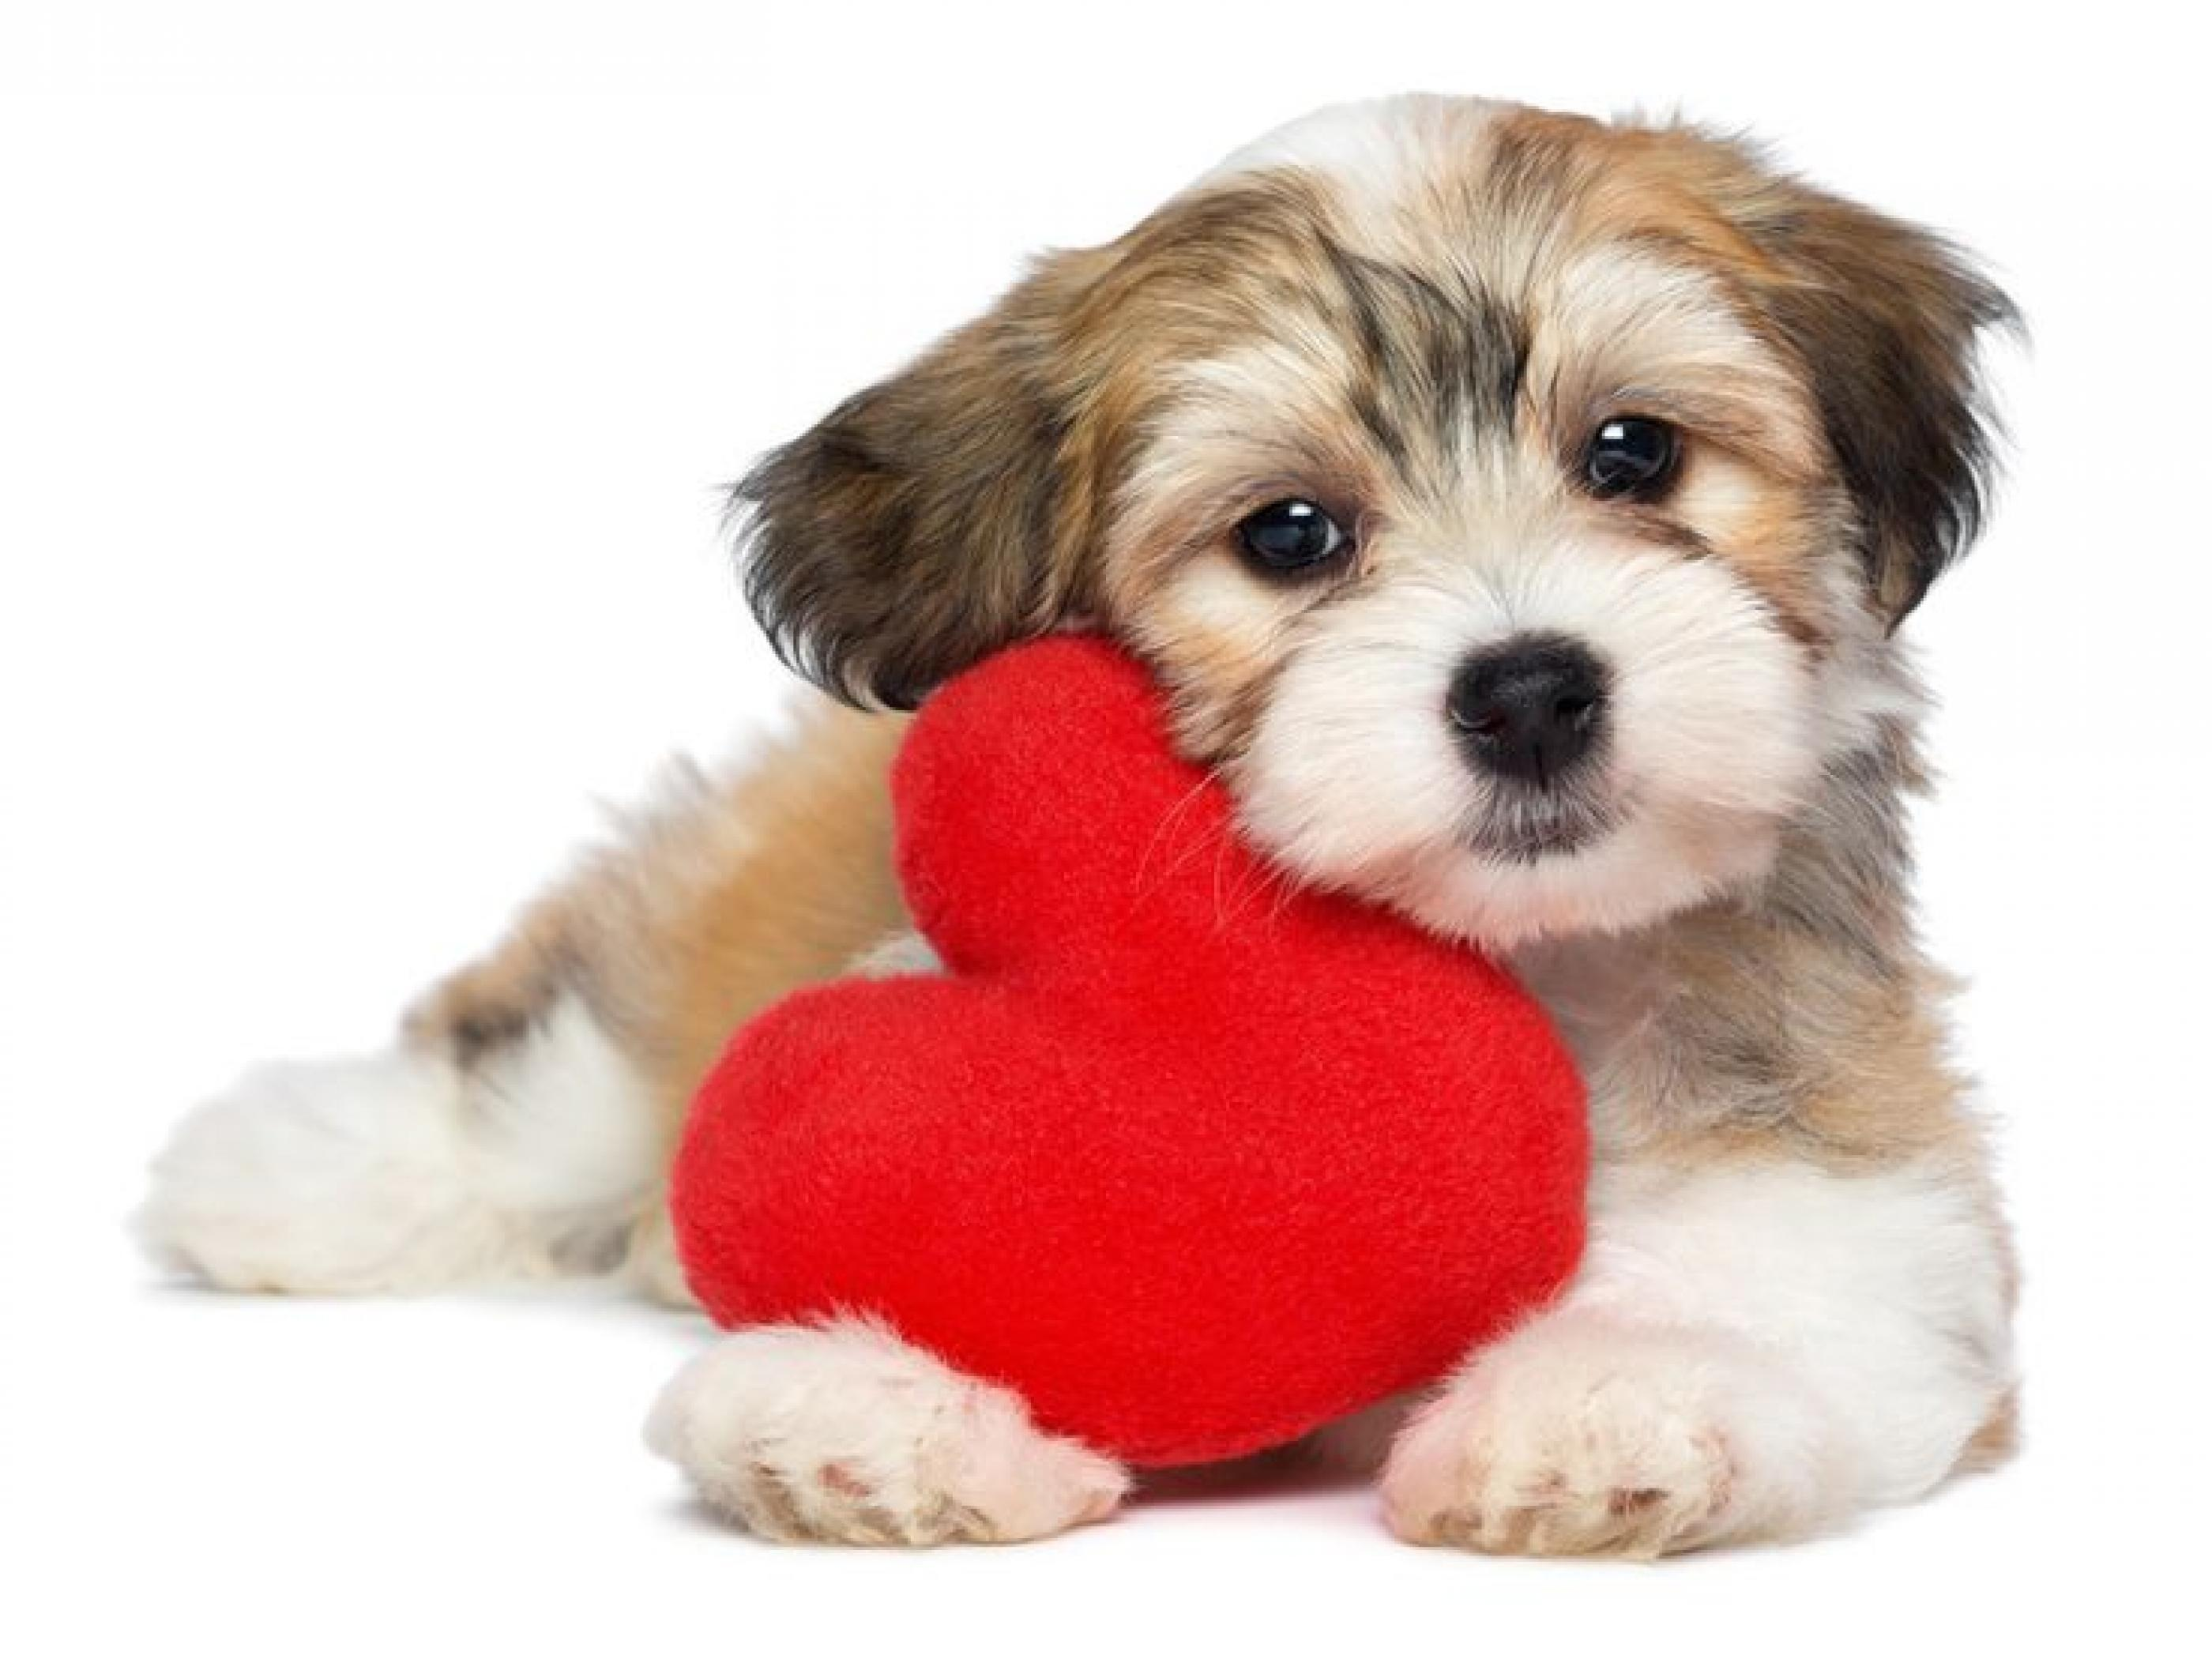 Valentines Day Dog Wallpaper - W.Impex | Wallimpex.com